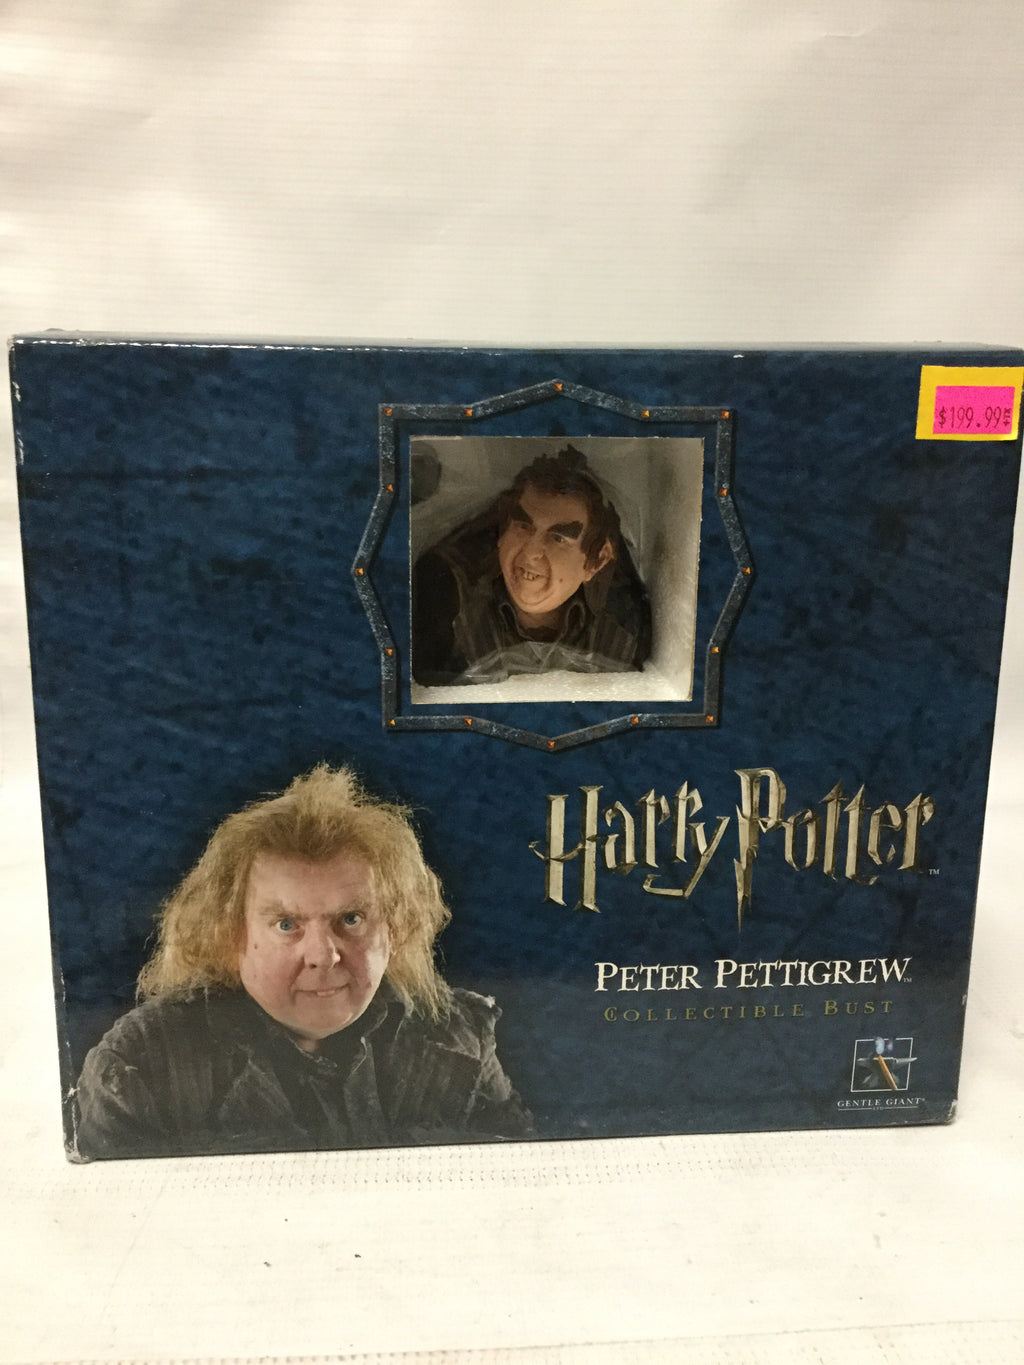 Gentle Giant Ltd Harry Potter Peter Pettigrew Collectible Bust